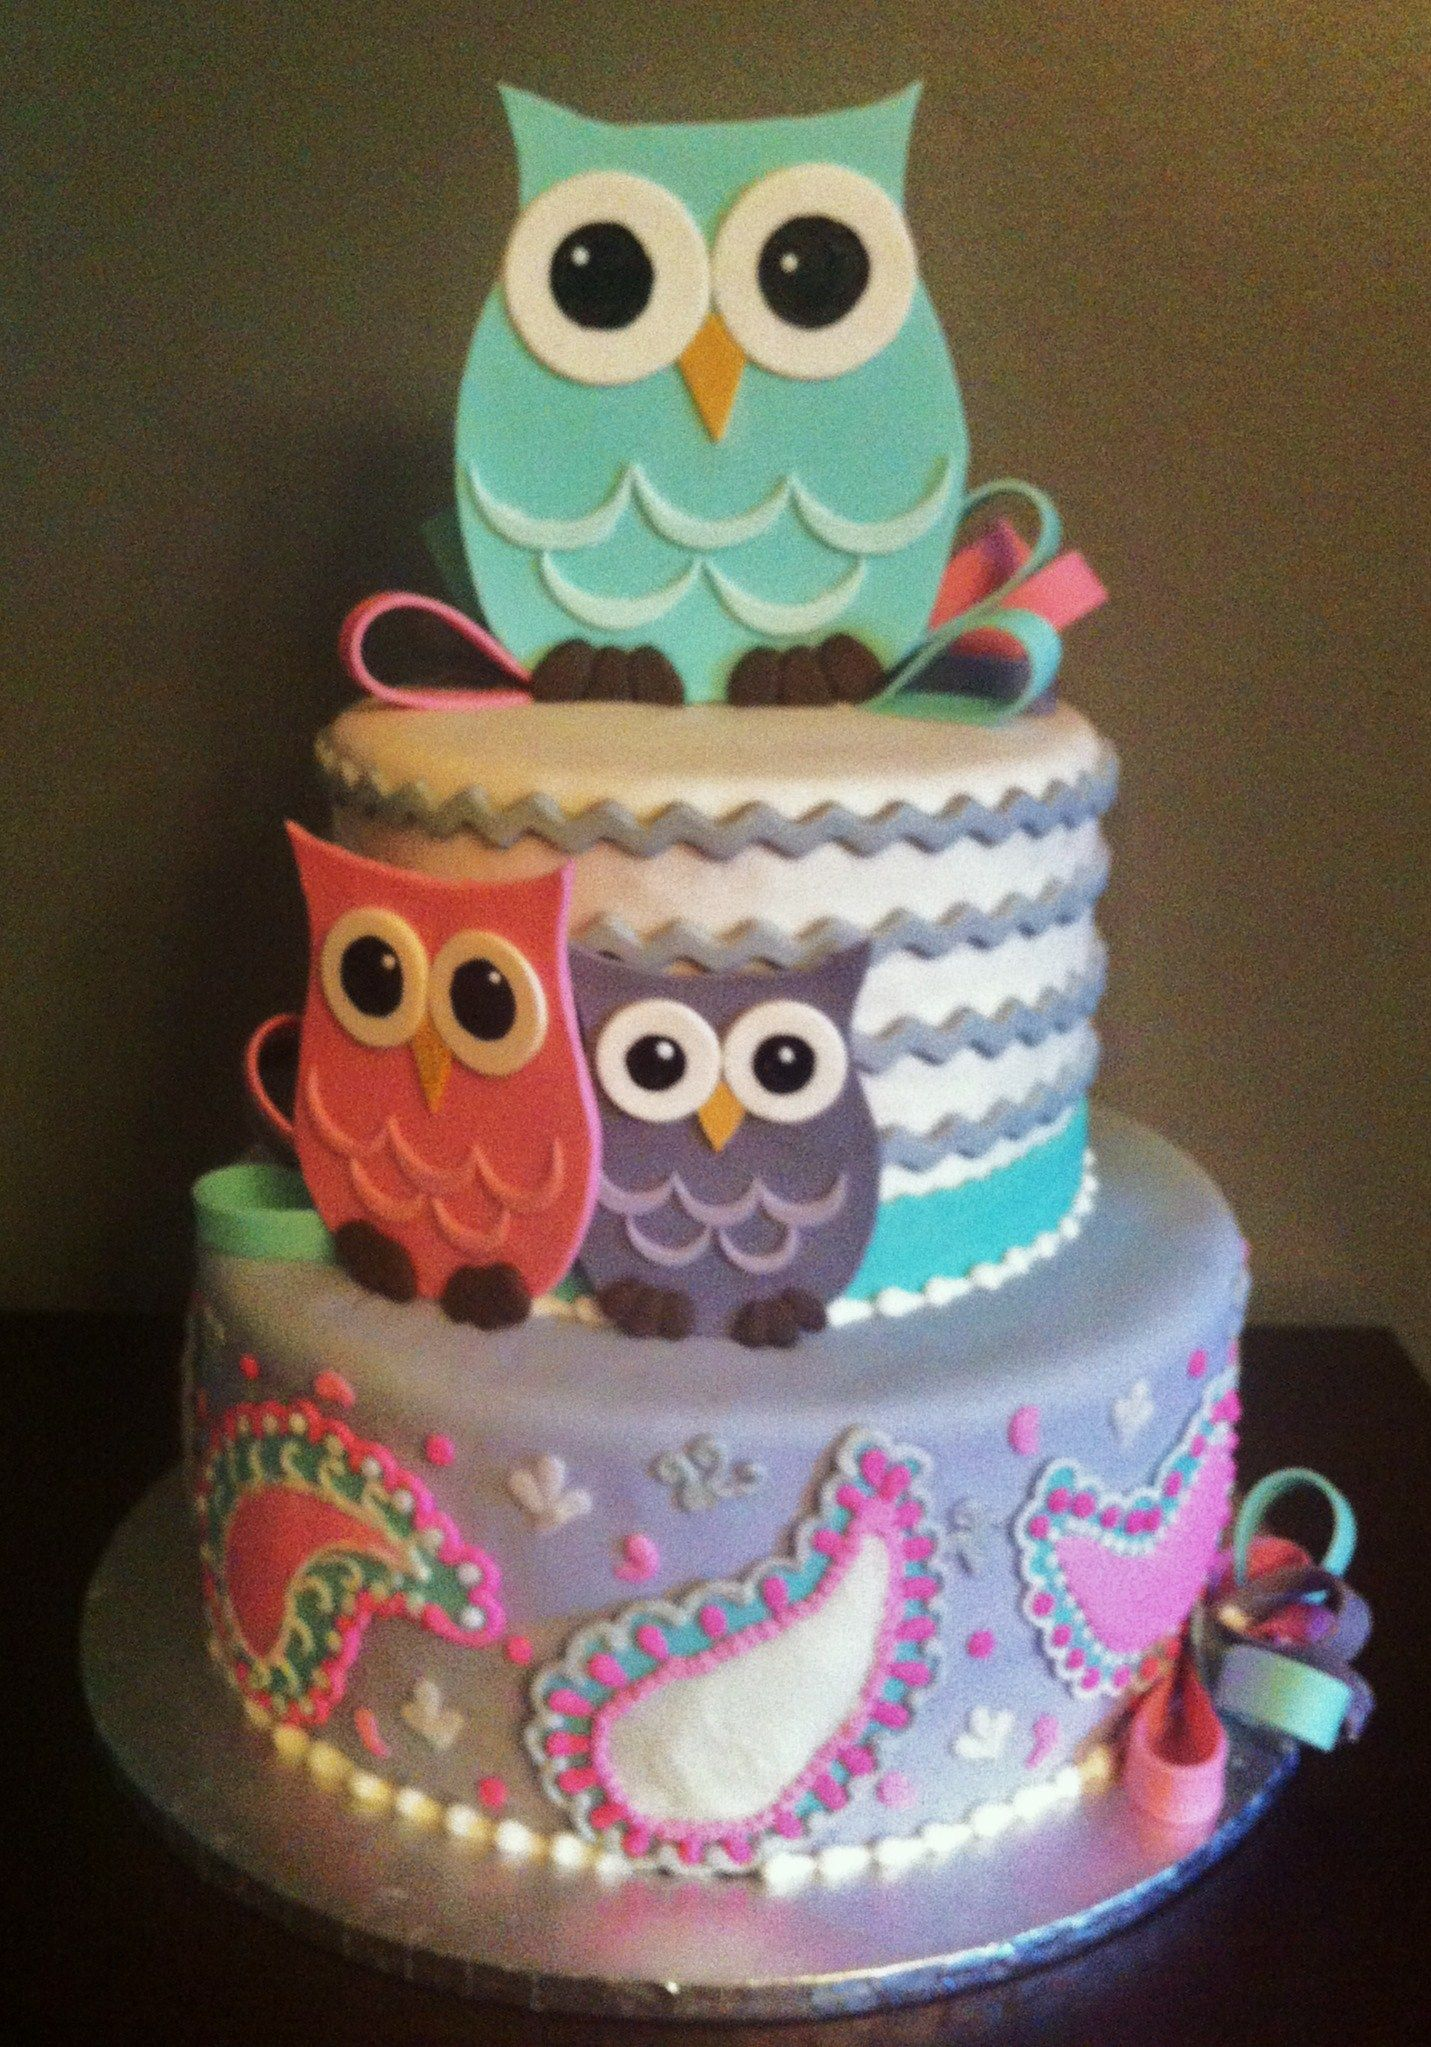 fondant cake with gumpaste owls and bows tara mack this reminds